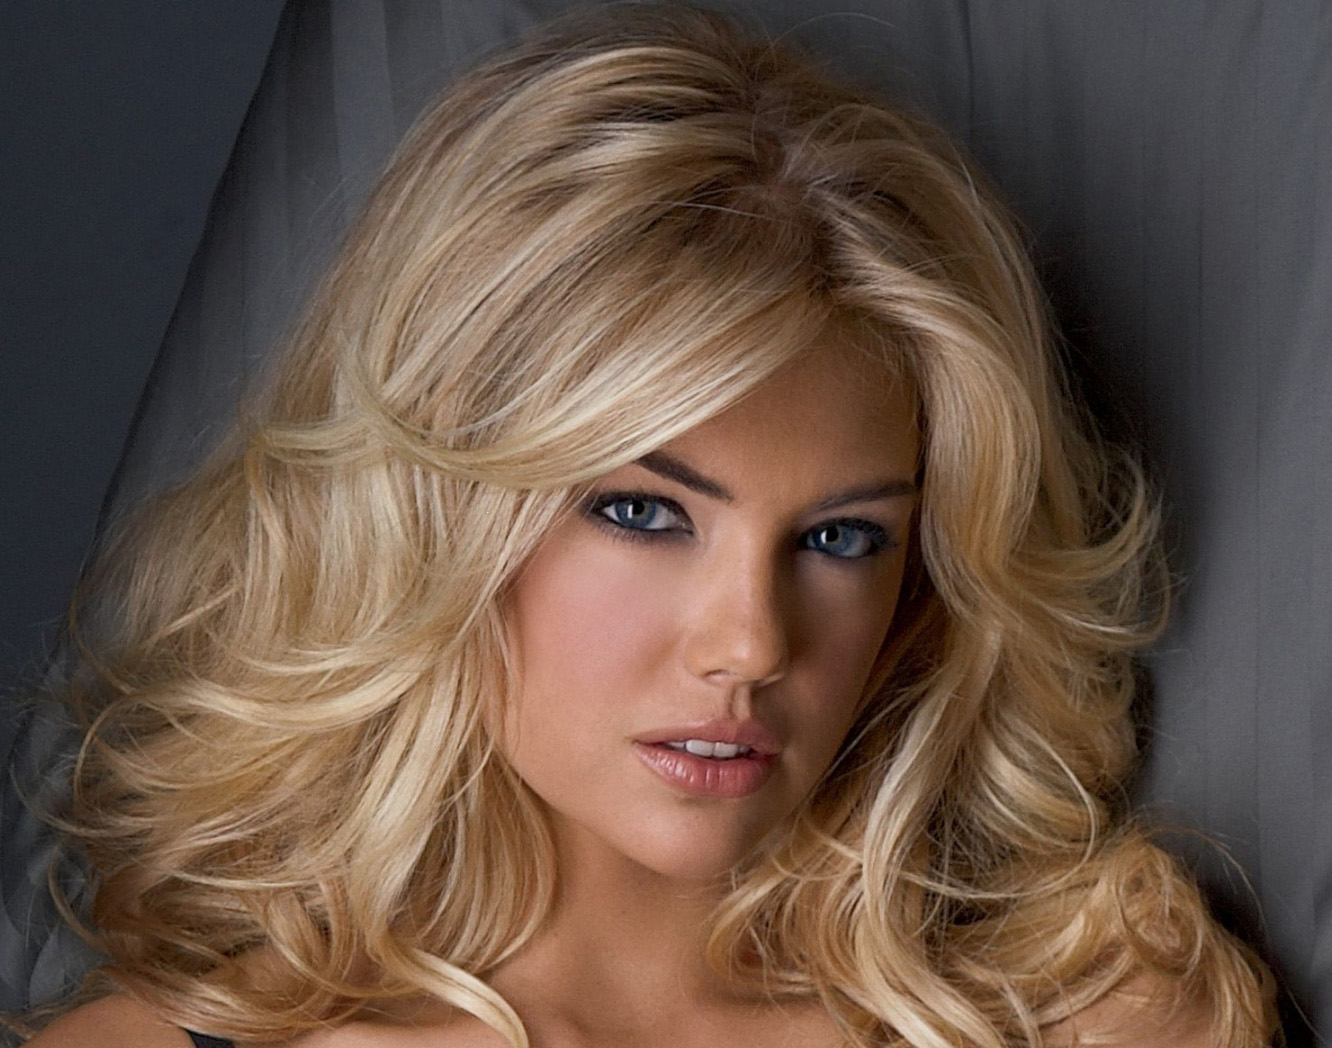 Kate Upton Is An American Model She Appeared In Advertisements For